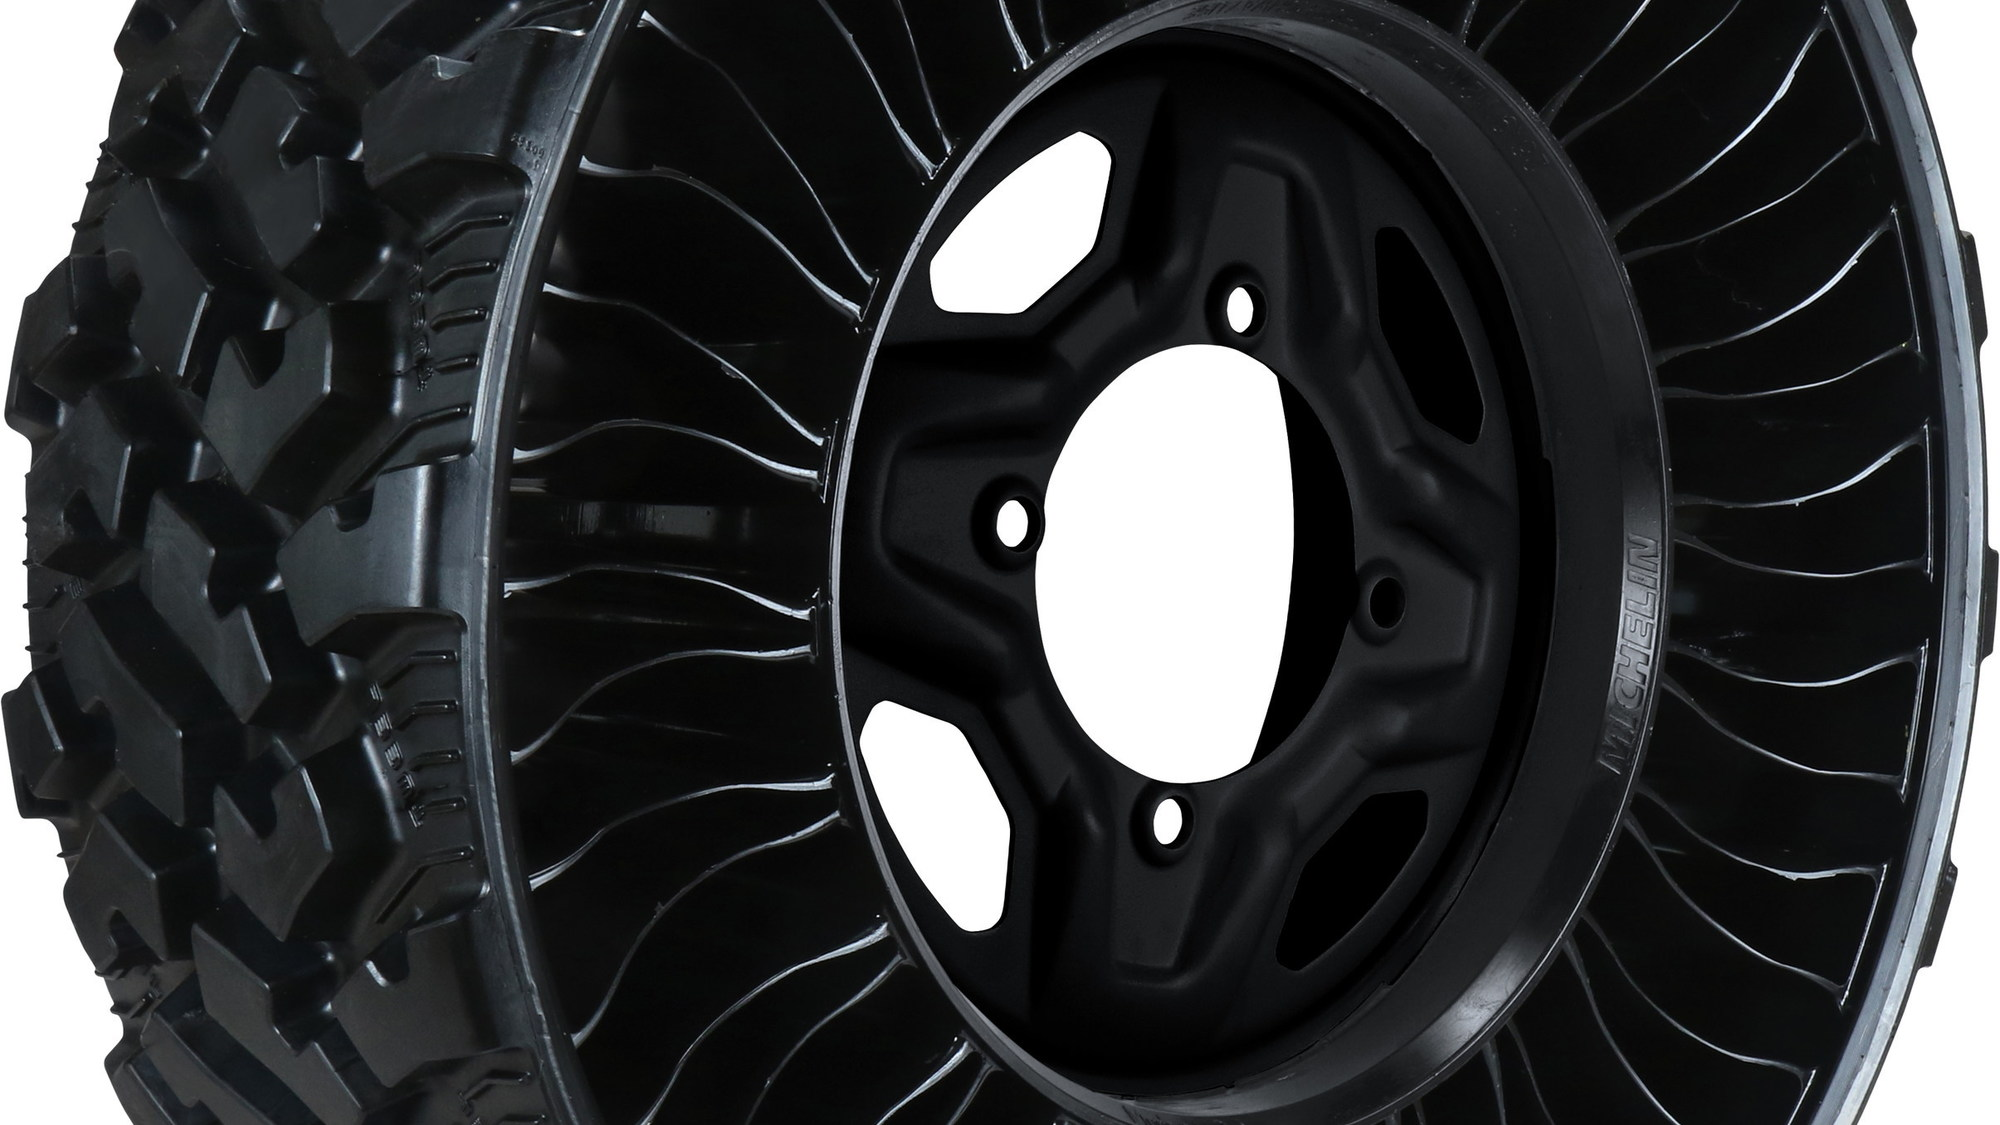 Michelin Tweel is available for use on UTVs